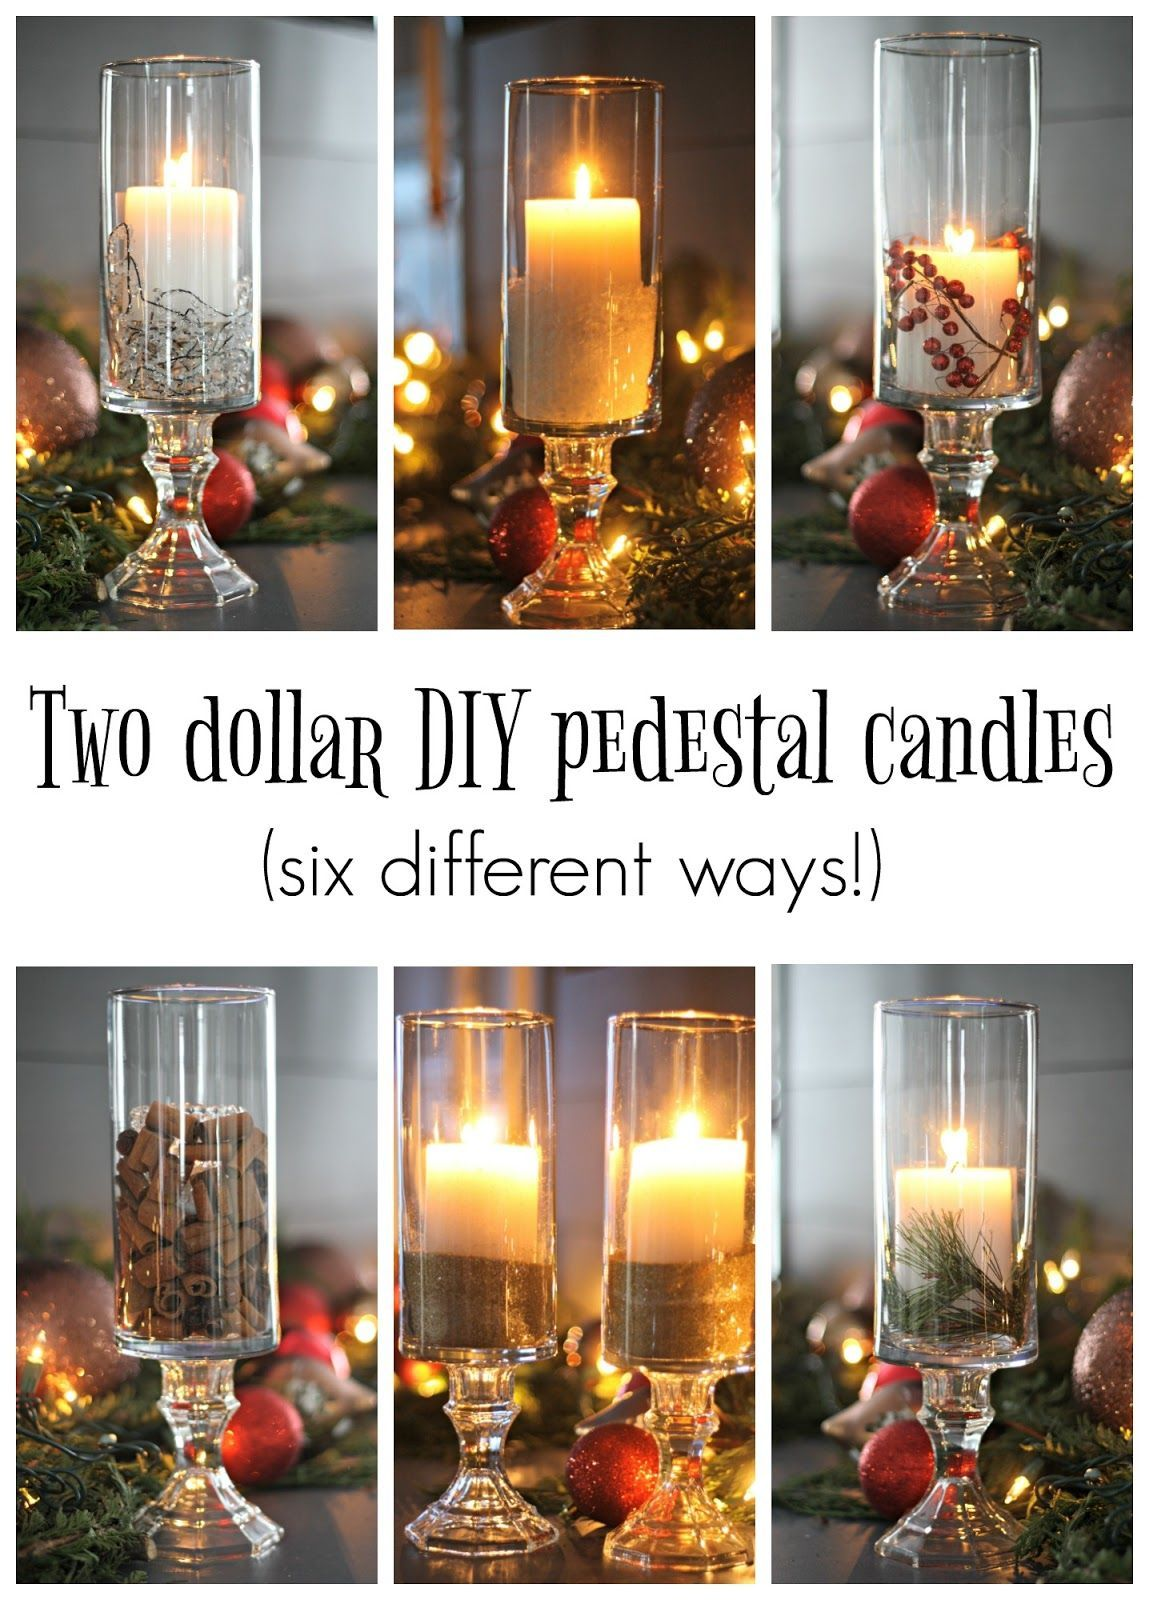 How to make diy dollar store pedestal candles so cheap and easy